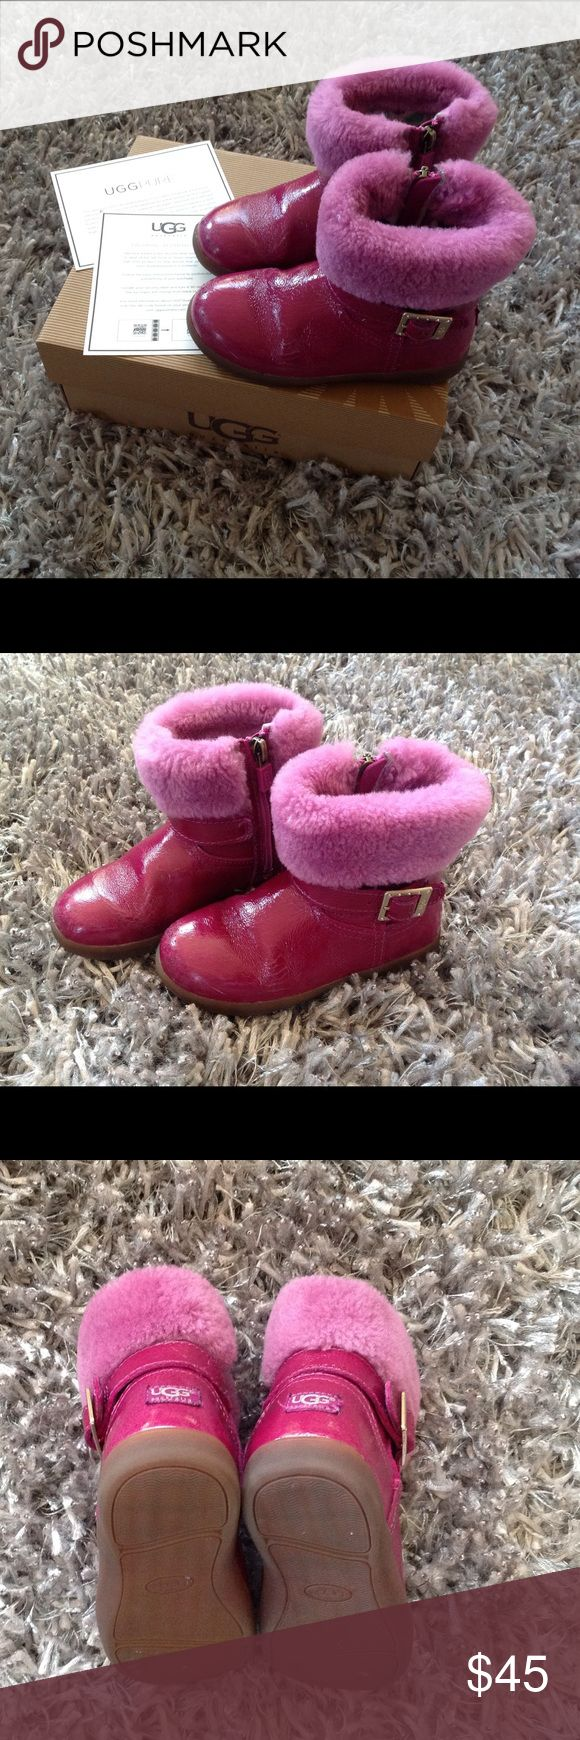 Toddler Girls UGG boots Pre loved shoes of my girl. In very good condition.Pet/smoke free home UGG Shoes Rain & Snow Boots